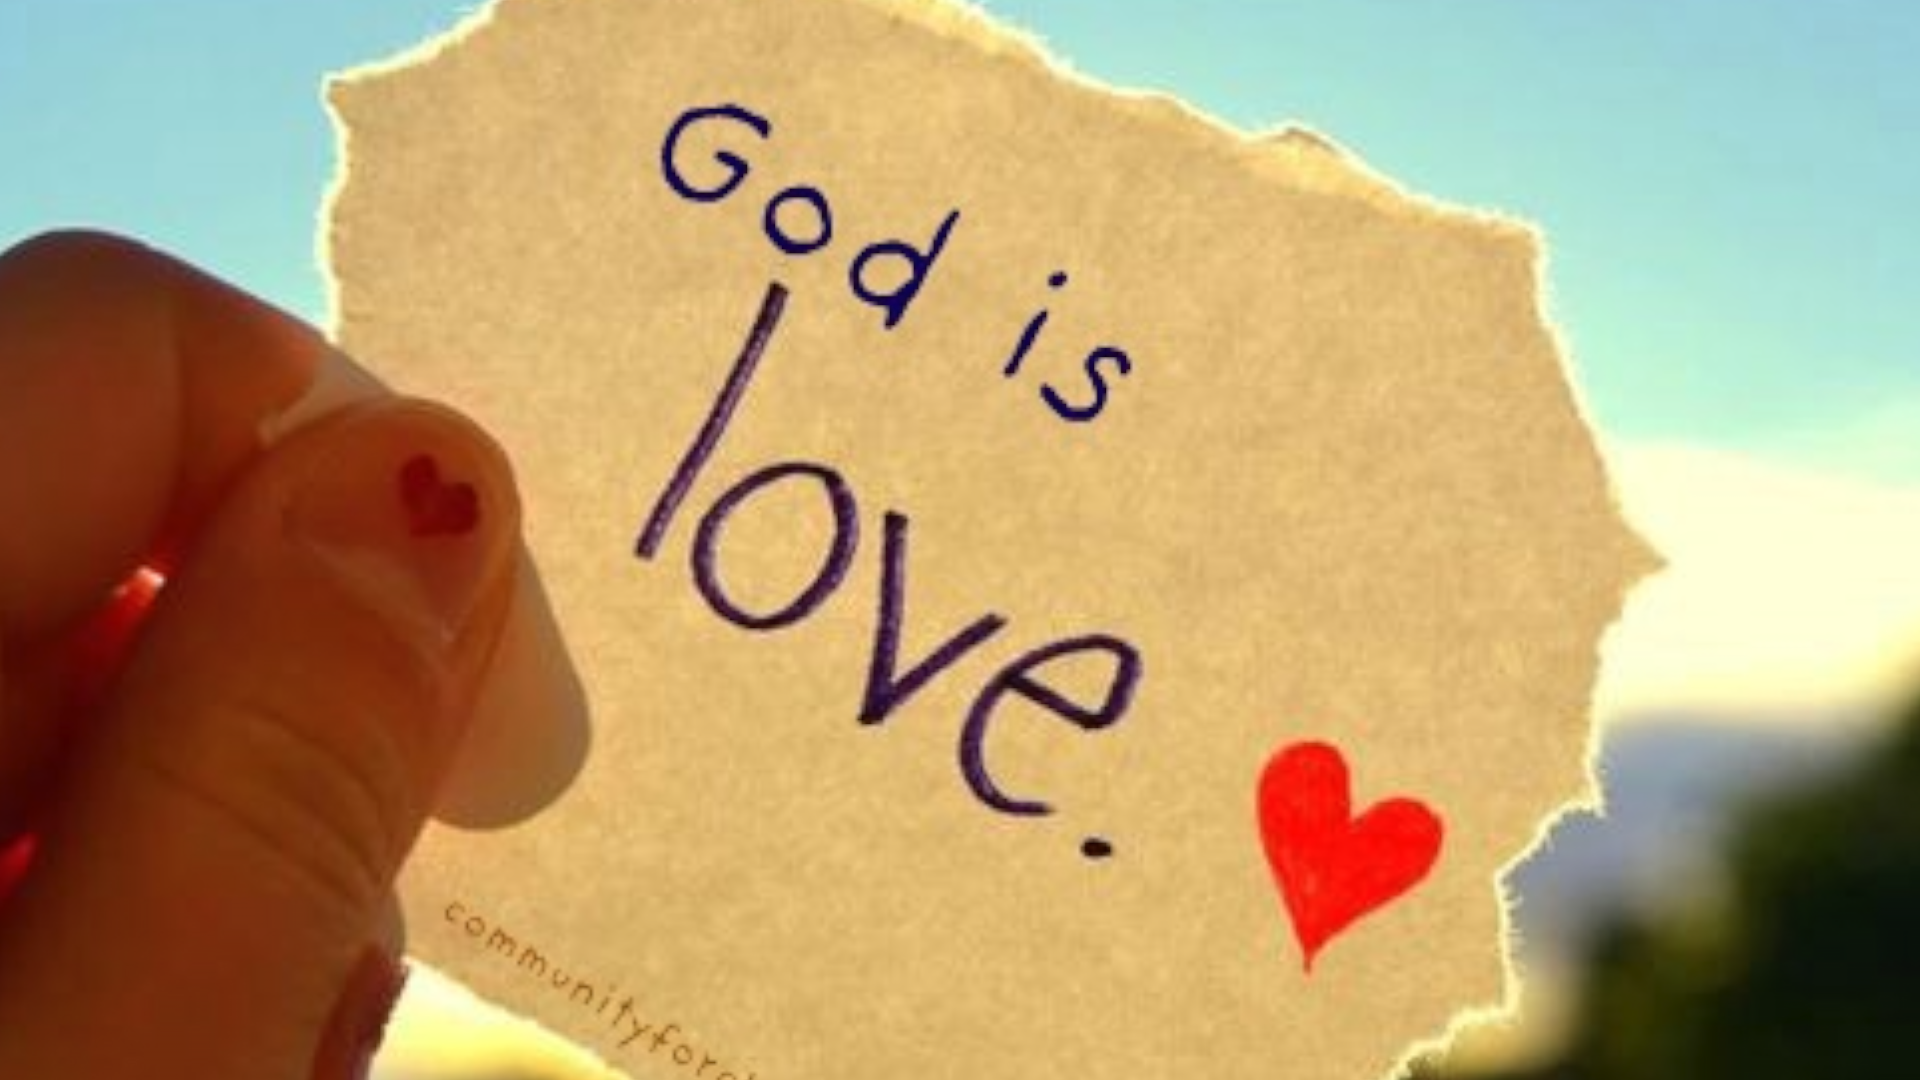 day-6-god-is-love